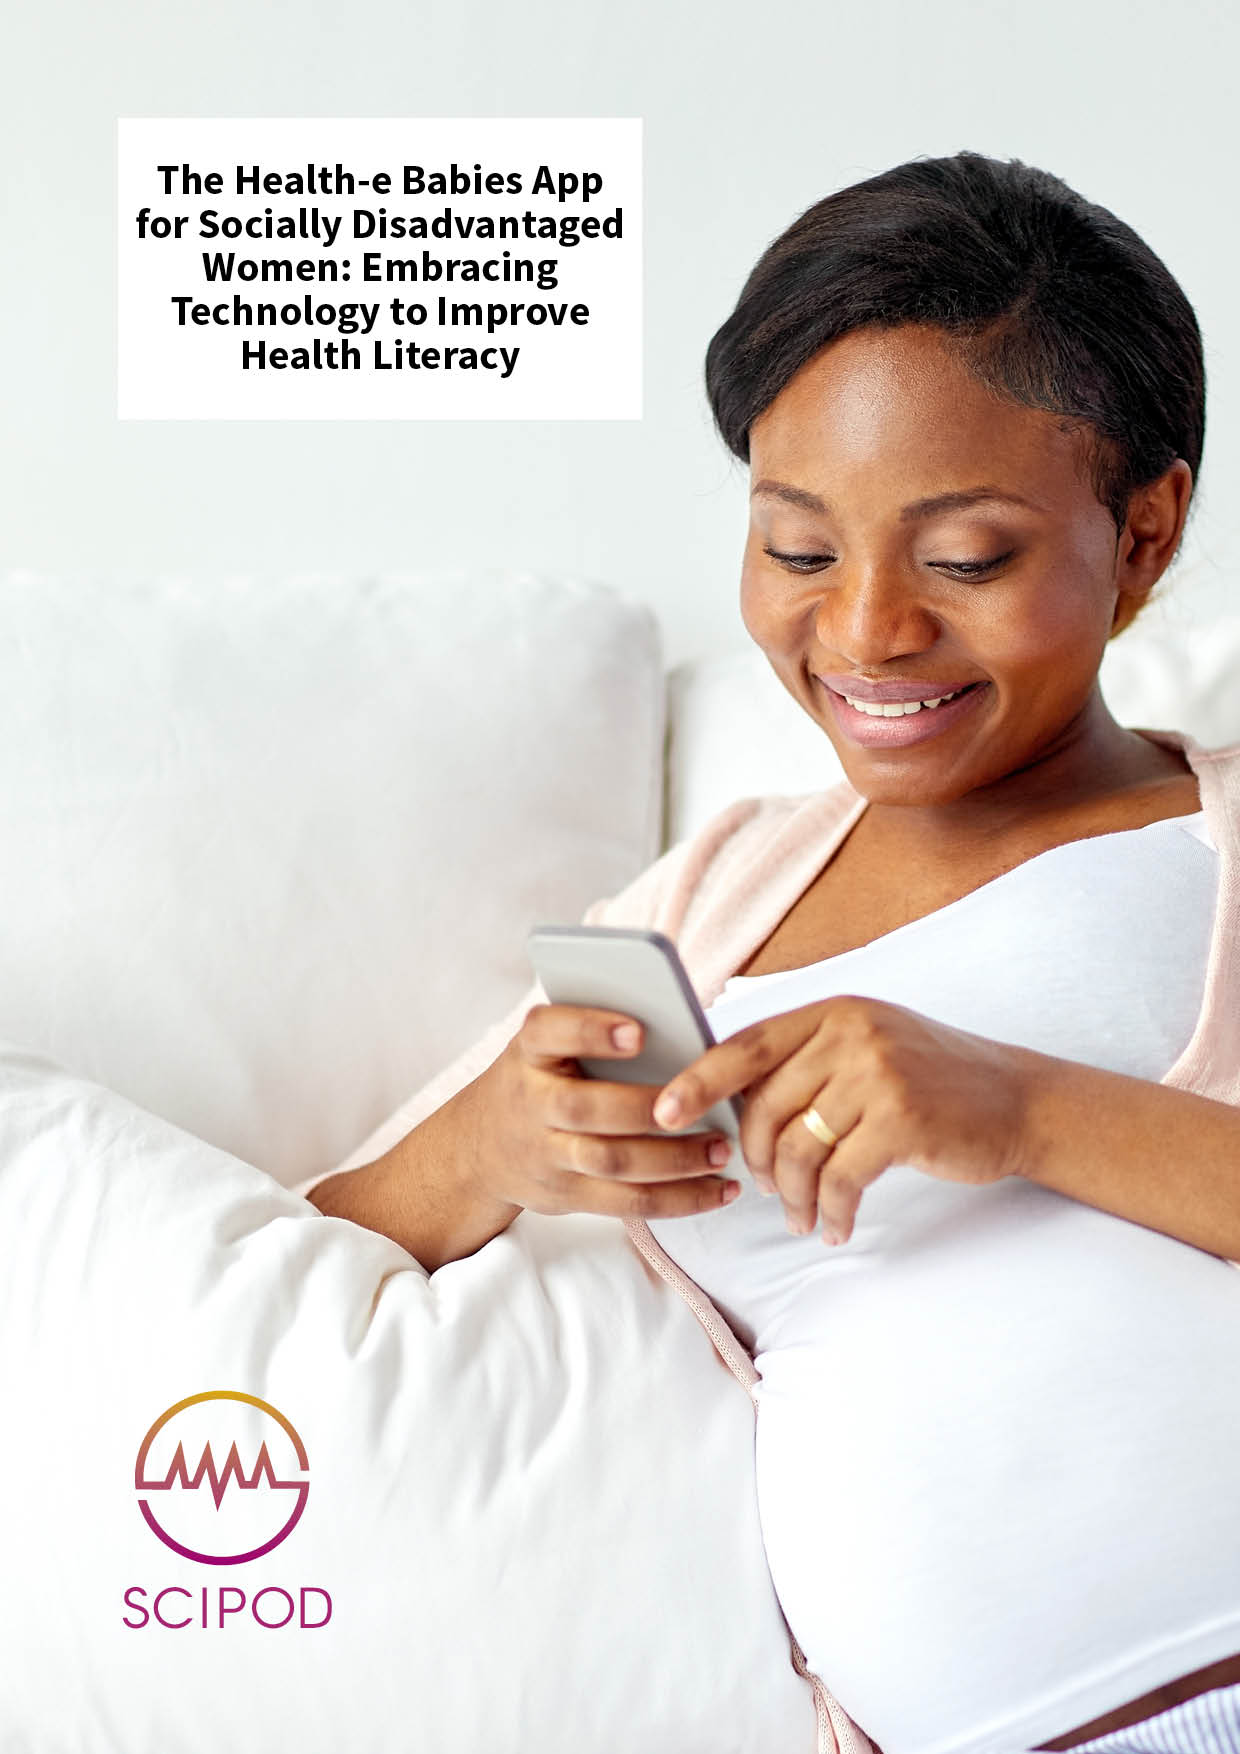 The Health-e Babies App for Socially Disadvantaged Women: Embracing Technology to Improve Health Literacy